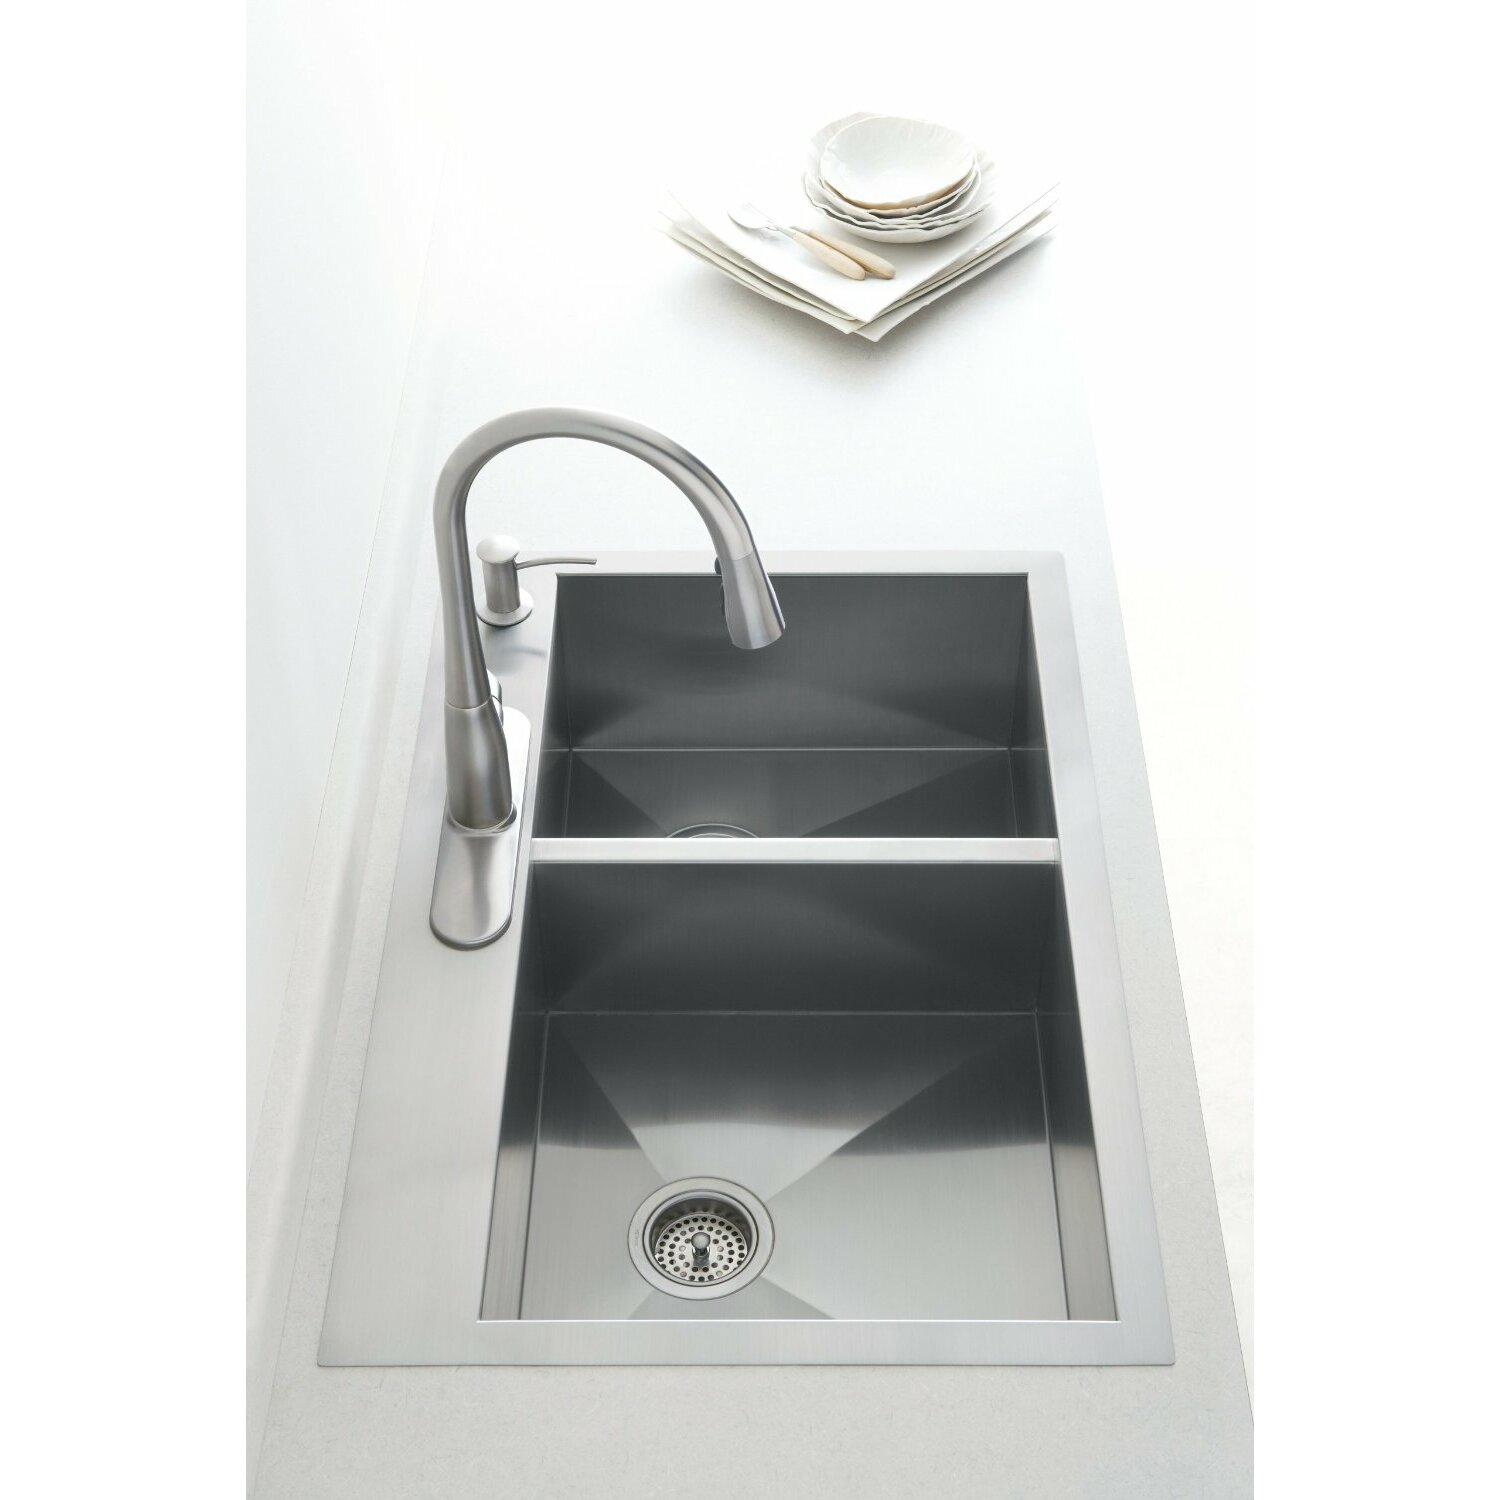 Kohler vault 33 x 22 x 9 5 16 top mount under mount for Best kitchen faucet for double sink